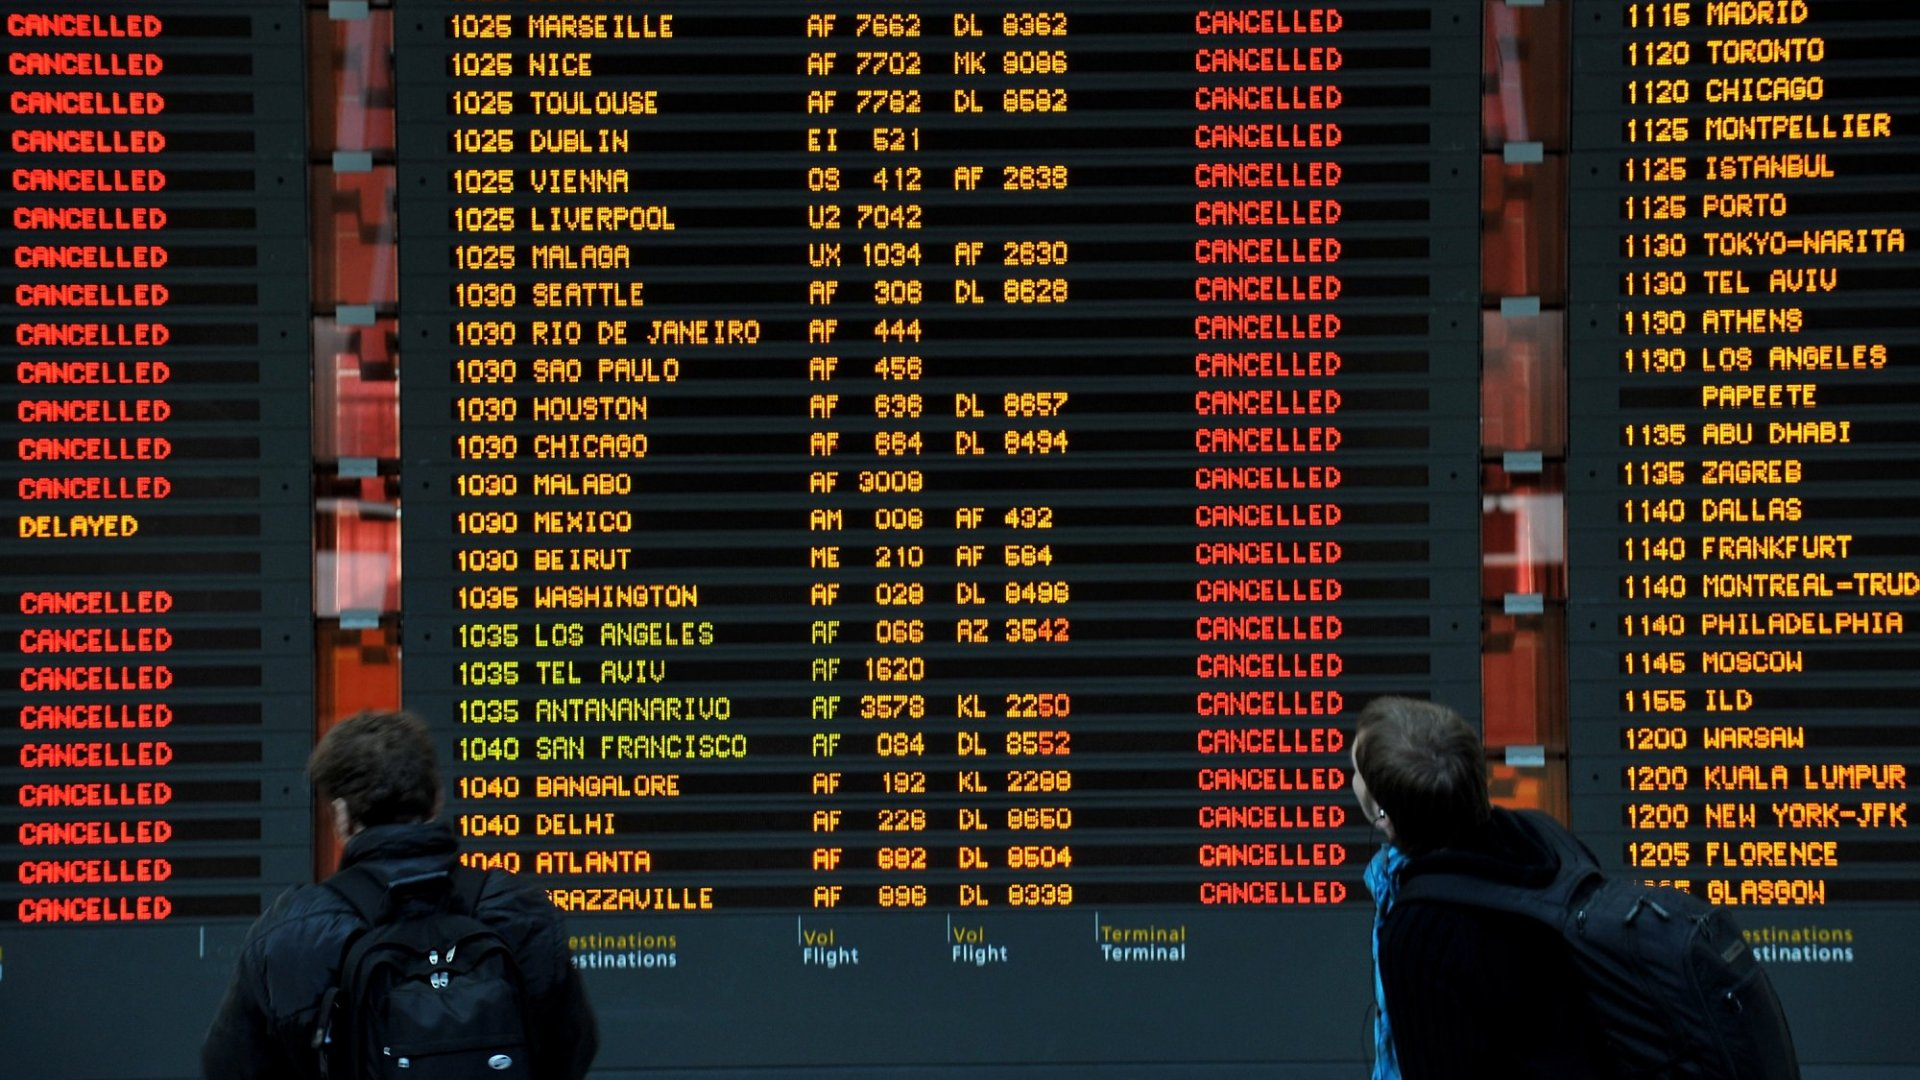 Airlines Are Legally Required to Refund Canceled Flights (but Many Are Refusing to Do So)